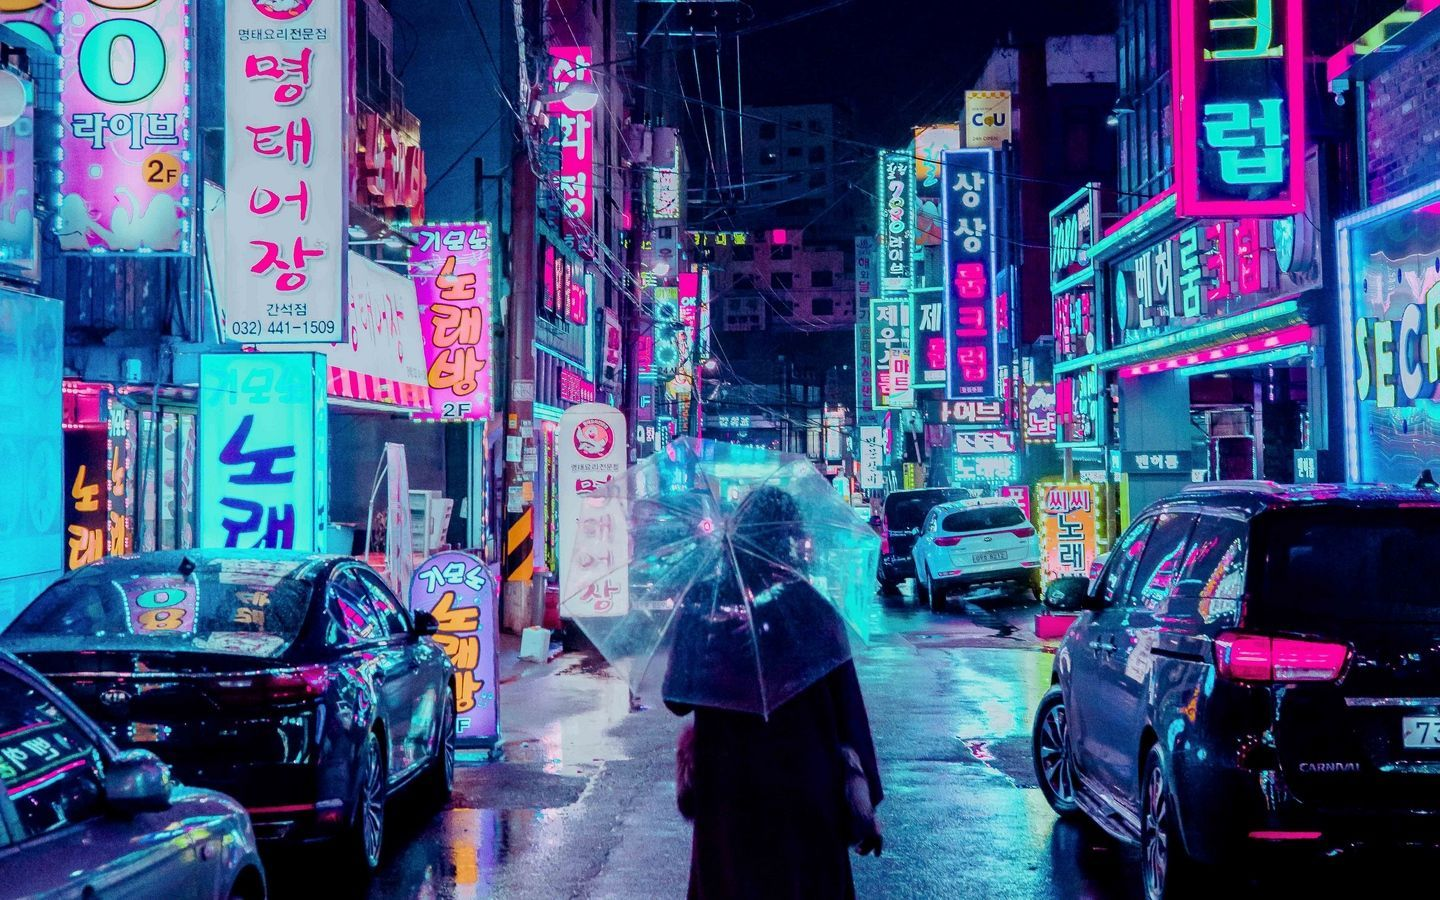 We've gathered more than 5 million images uploaded by our users and sorted them by the most popular ones. 80s Japan Aesthetic 4k HD Art Wallpapers - Wallpaper Cave